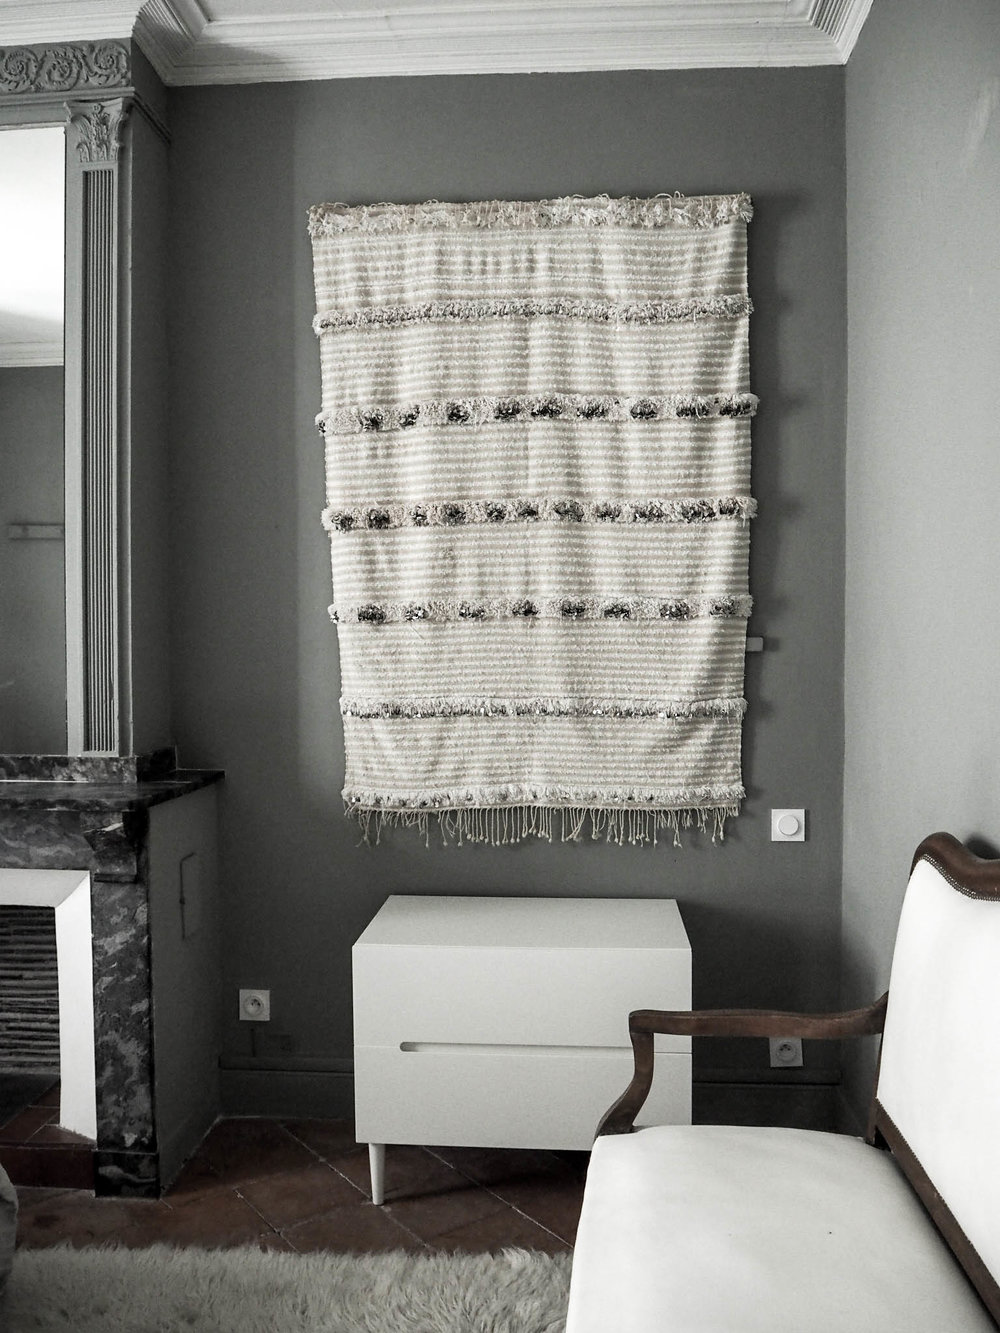 camellas-lloret-maison-d'hotes-room-2-wedding-blanket.jpg